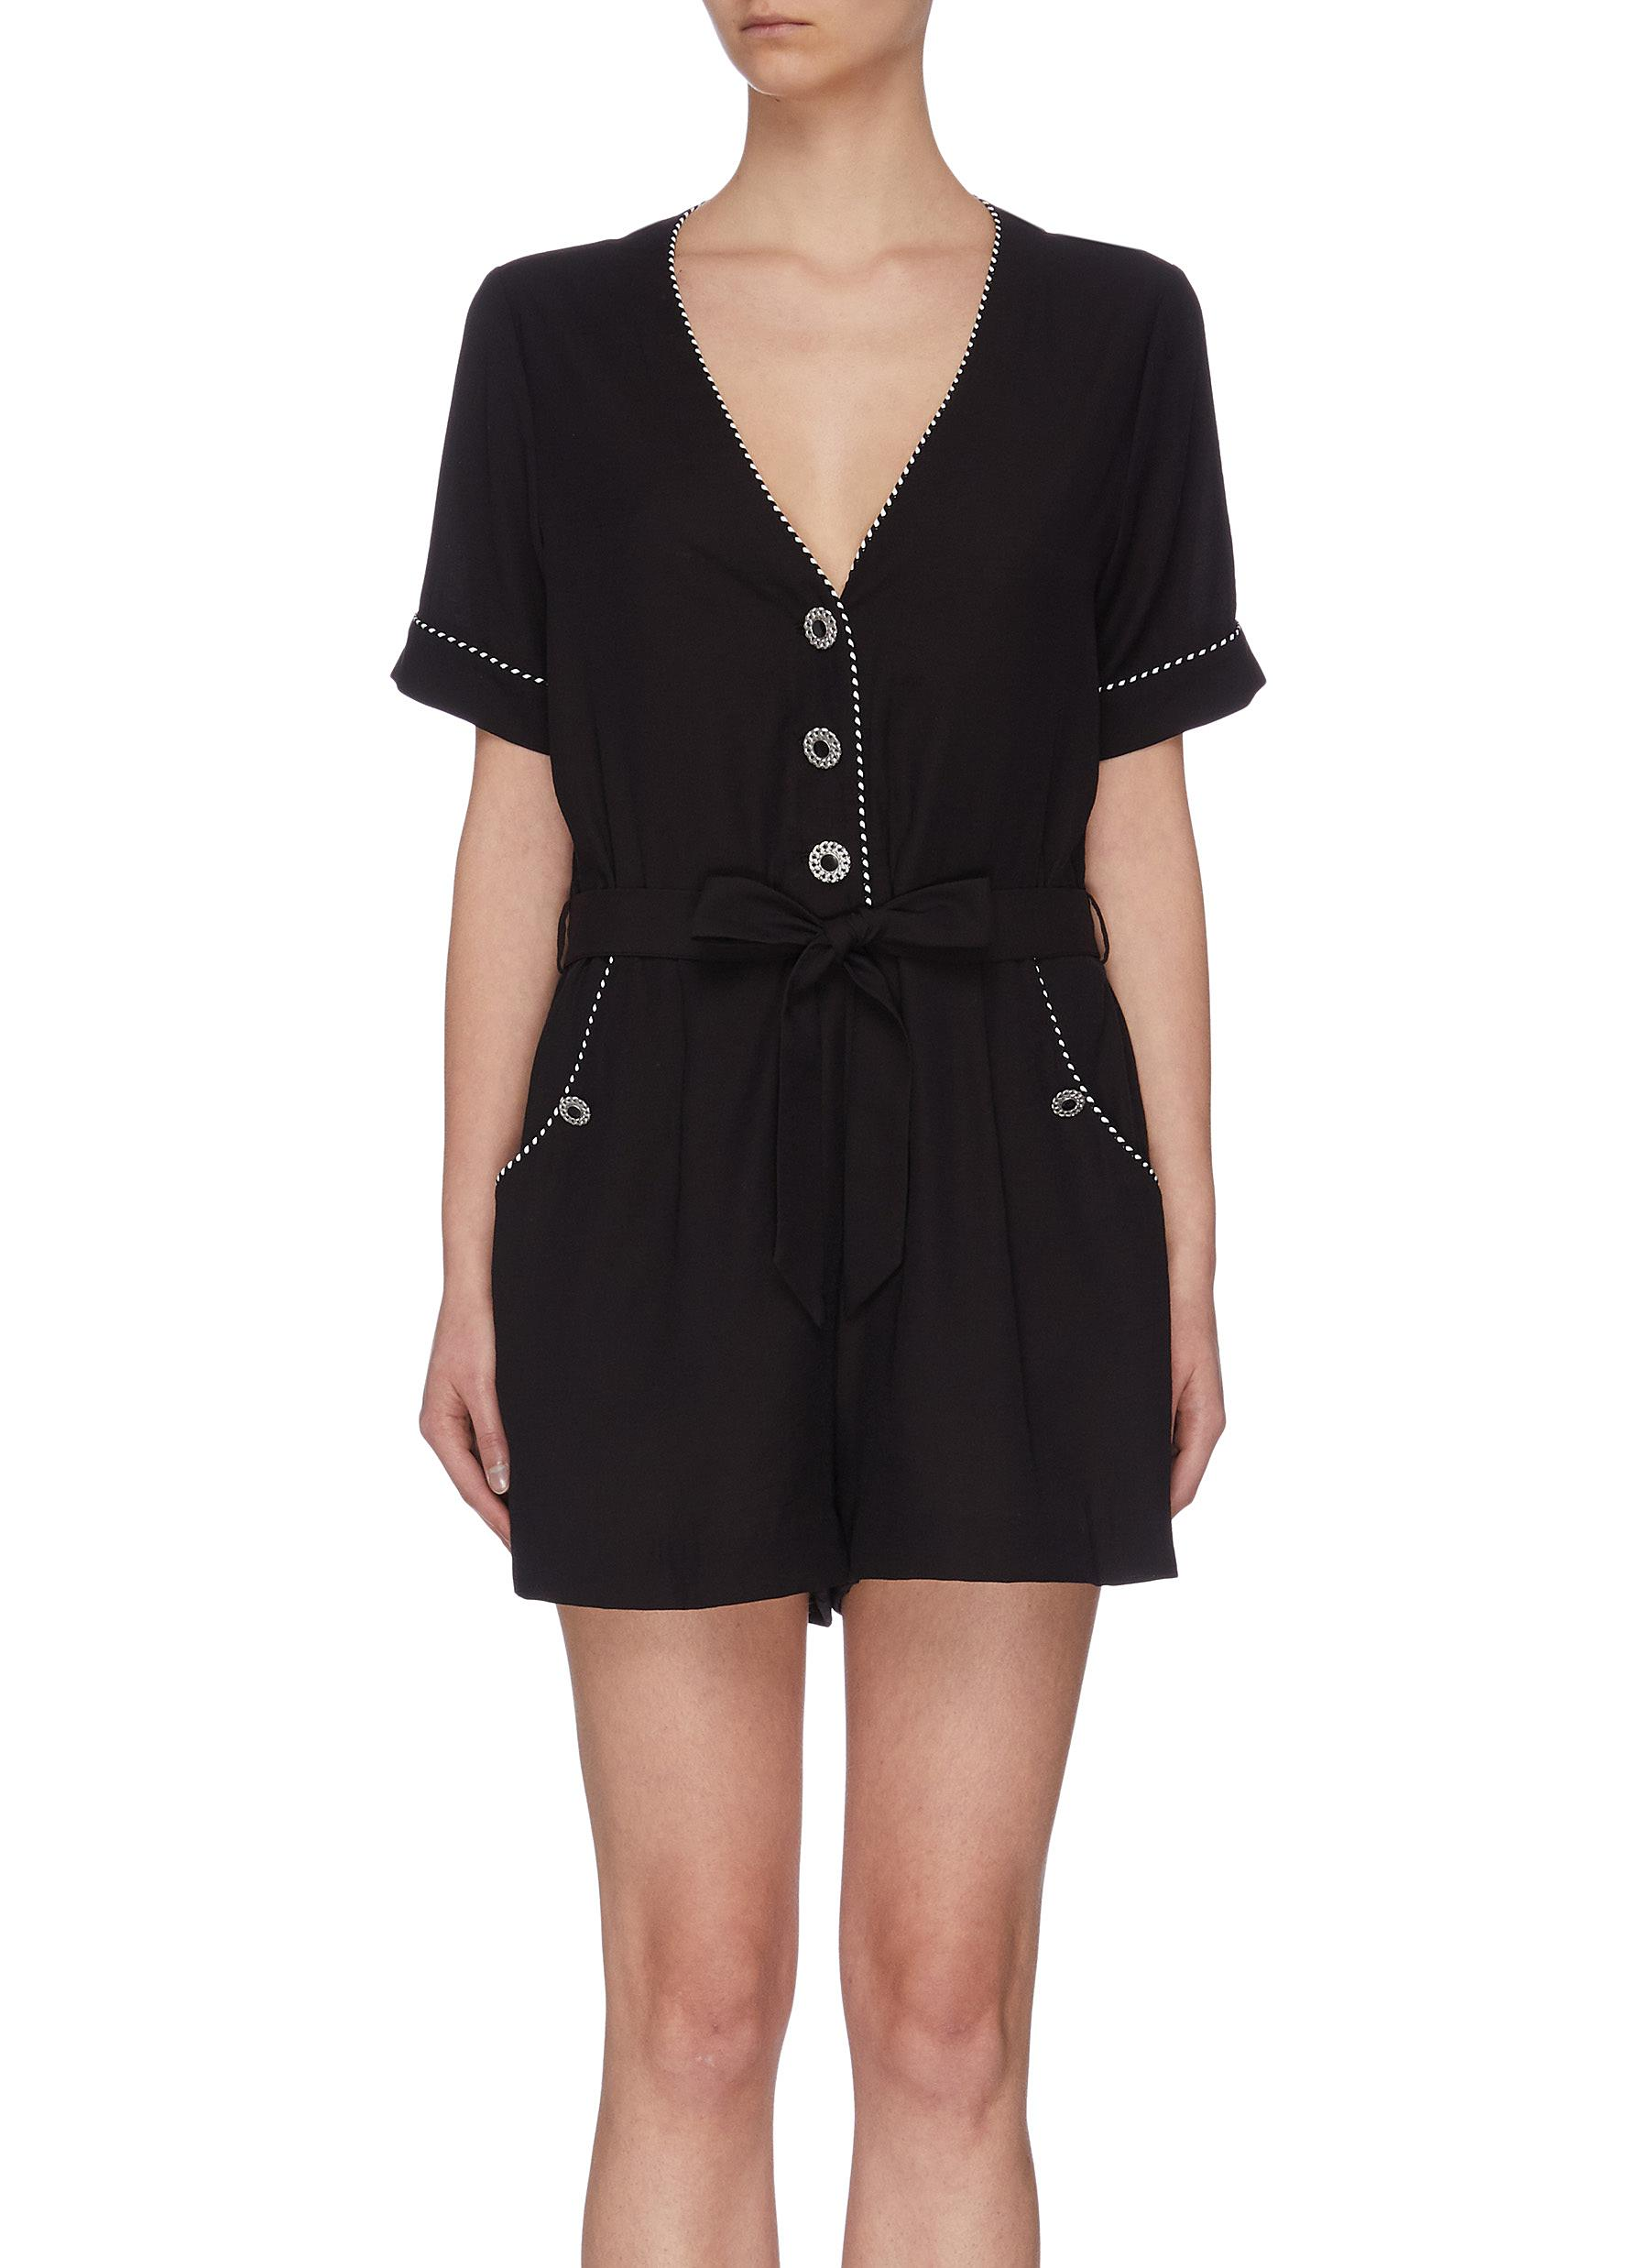 Jonathan Simkhai 'LUXE' CONTRAST PIPING ROMPER